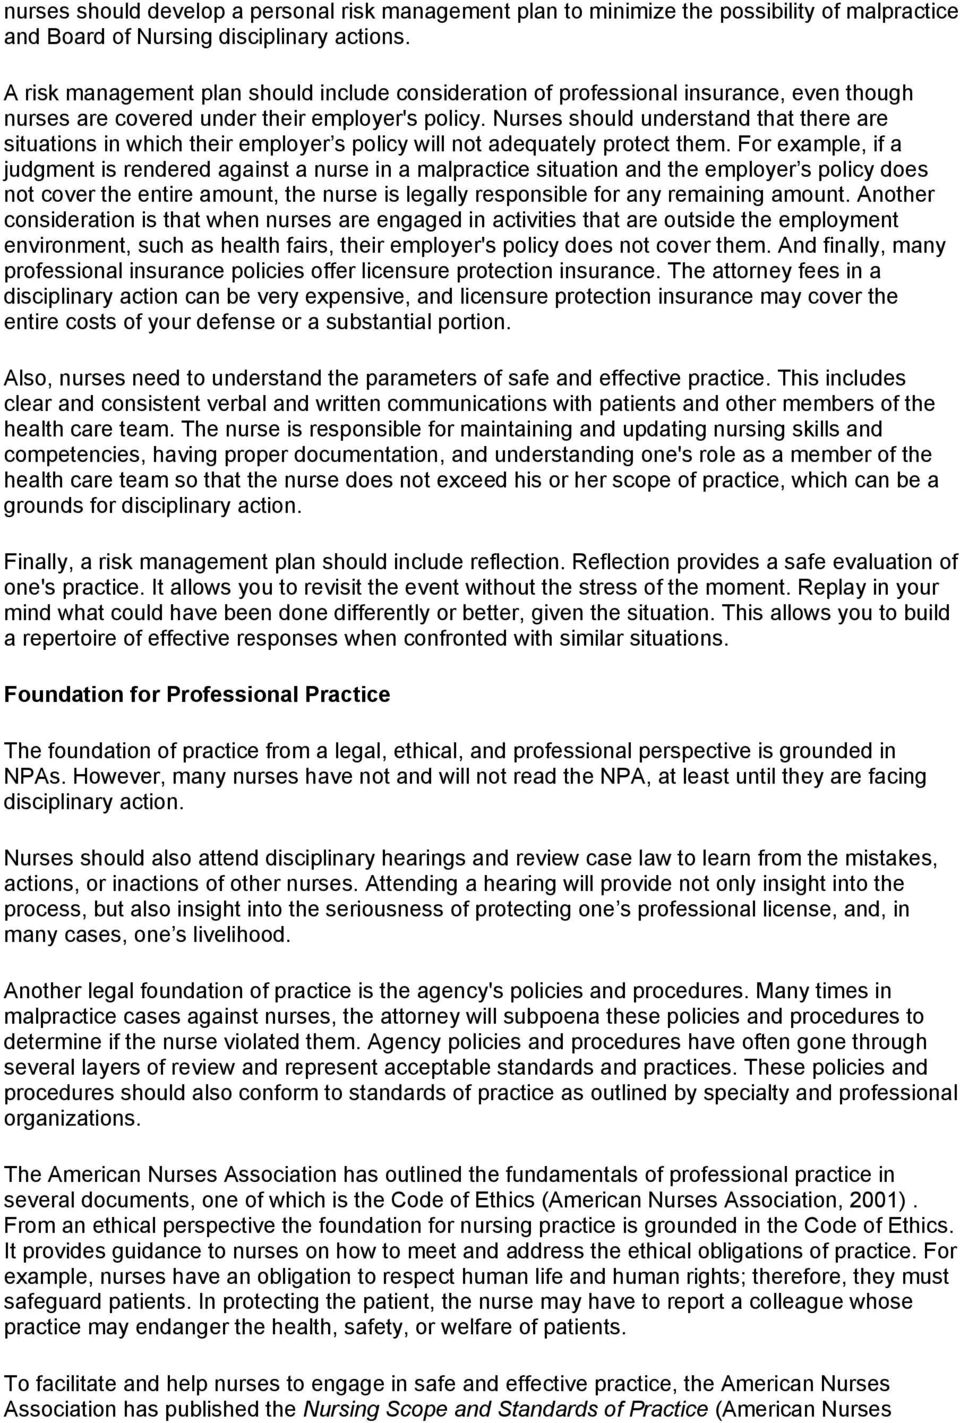 apply legal and ethical parameters to nursing practice essay Description seeattachedworddocforinstructions w6a2 assignment purpose: to discuss an ethical issue related to healthcare and apply.